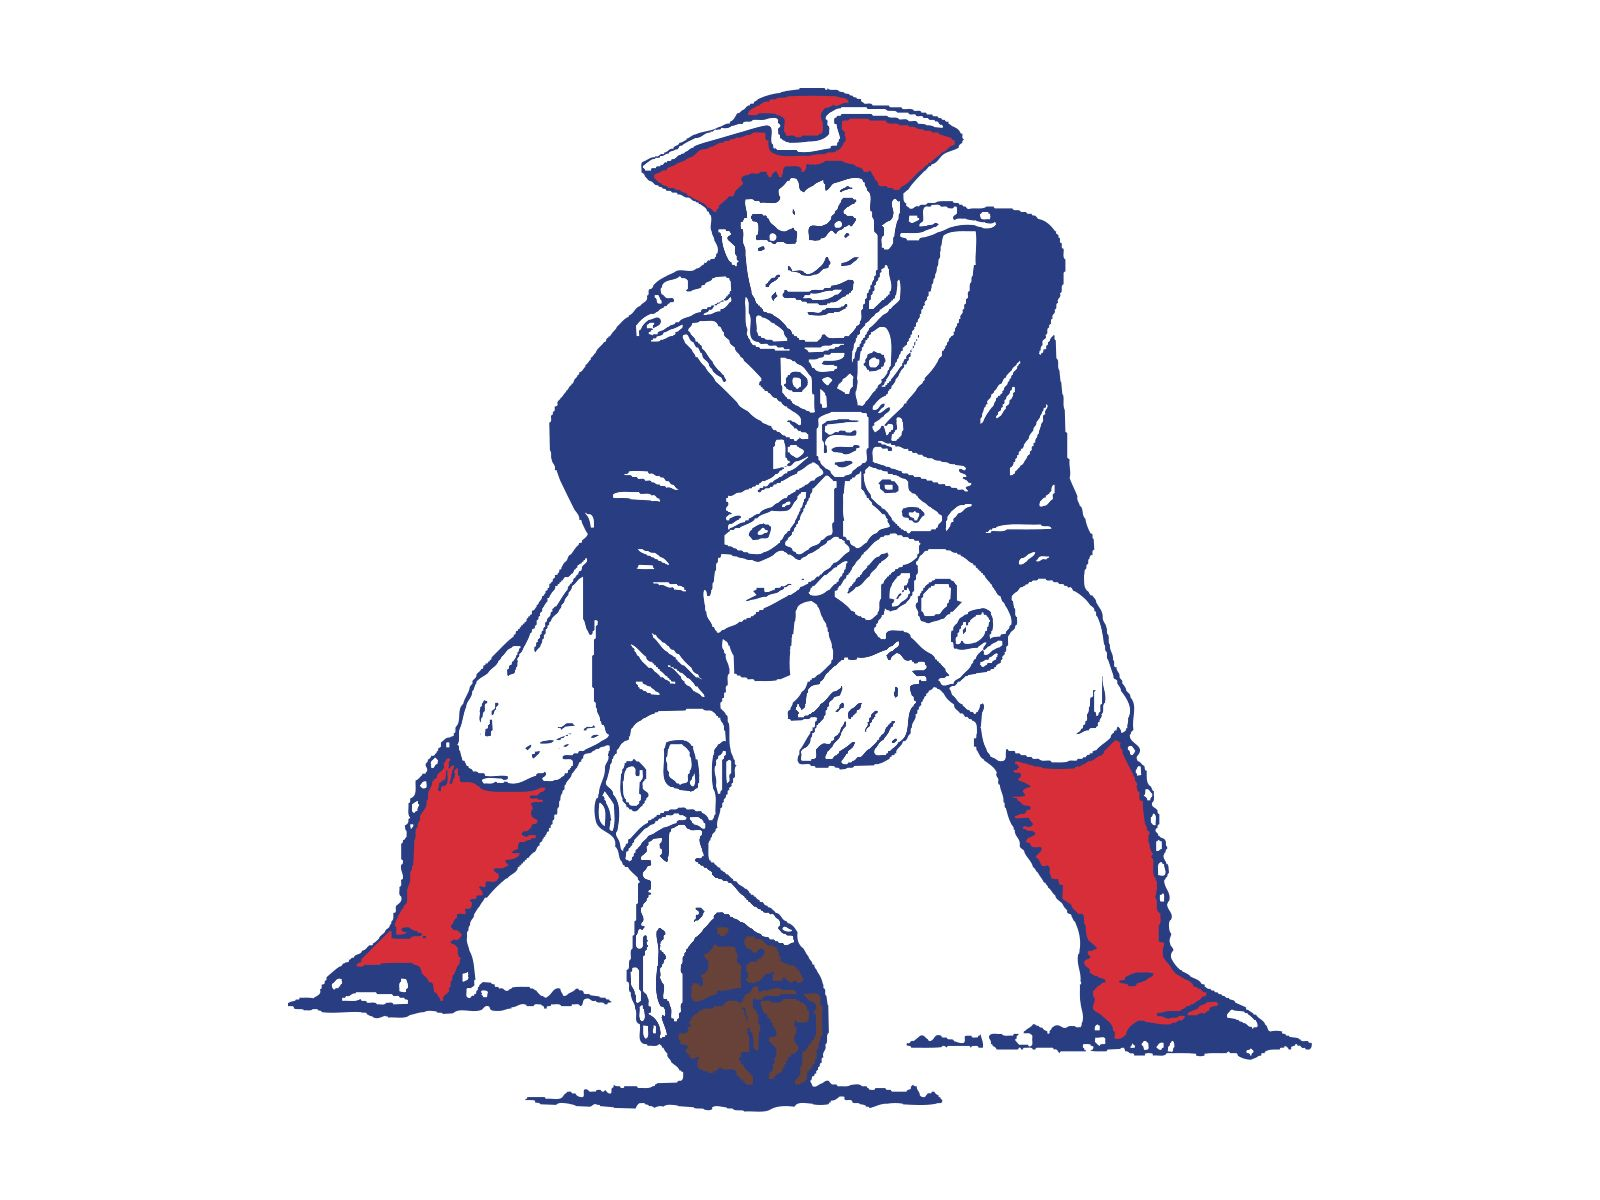 Pin By Tim Miller On Tim Miller In 2020 New England Patriots Logo Nfl New England Patriots Patriots Logo